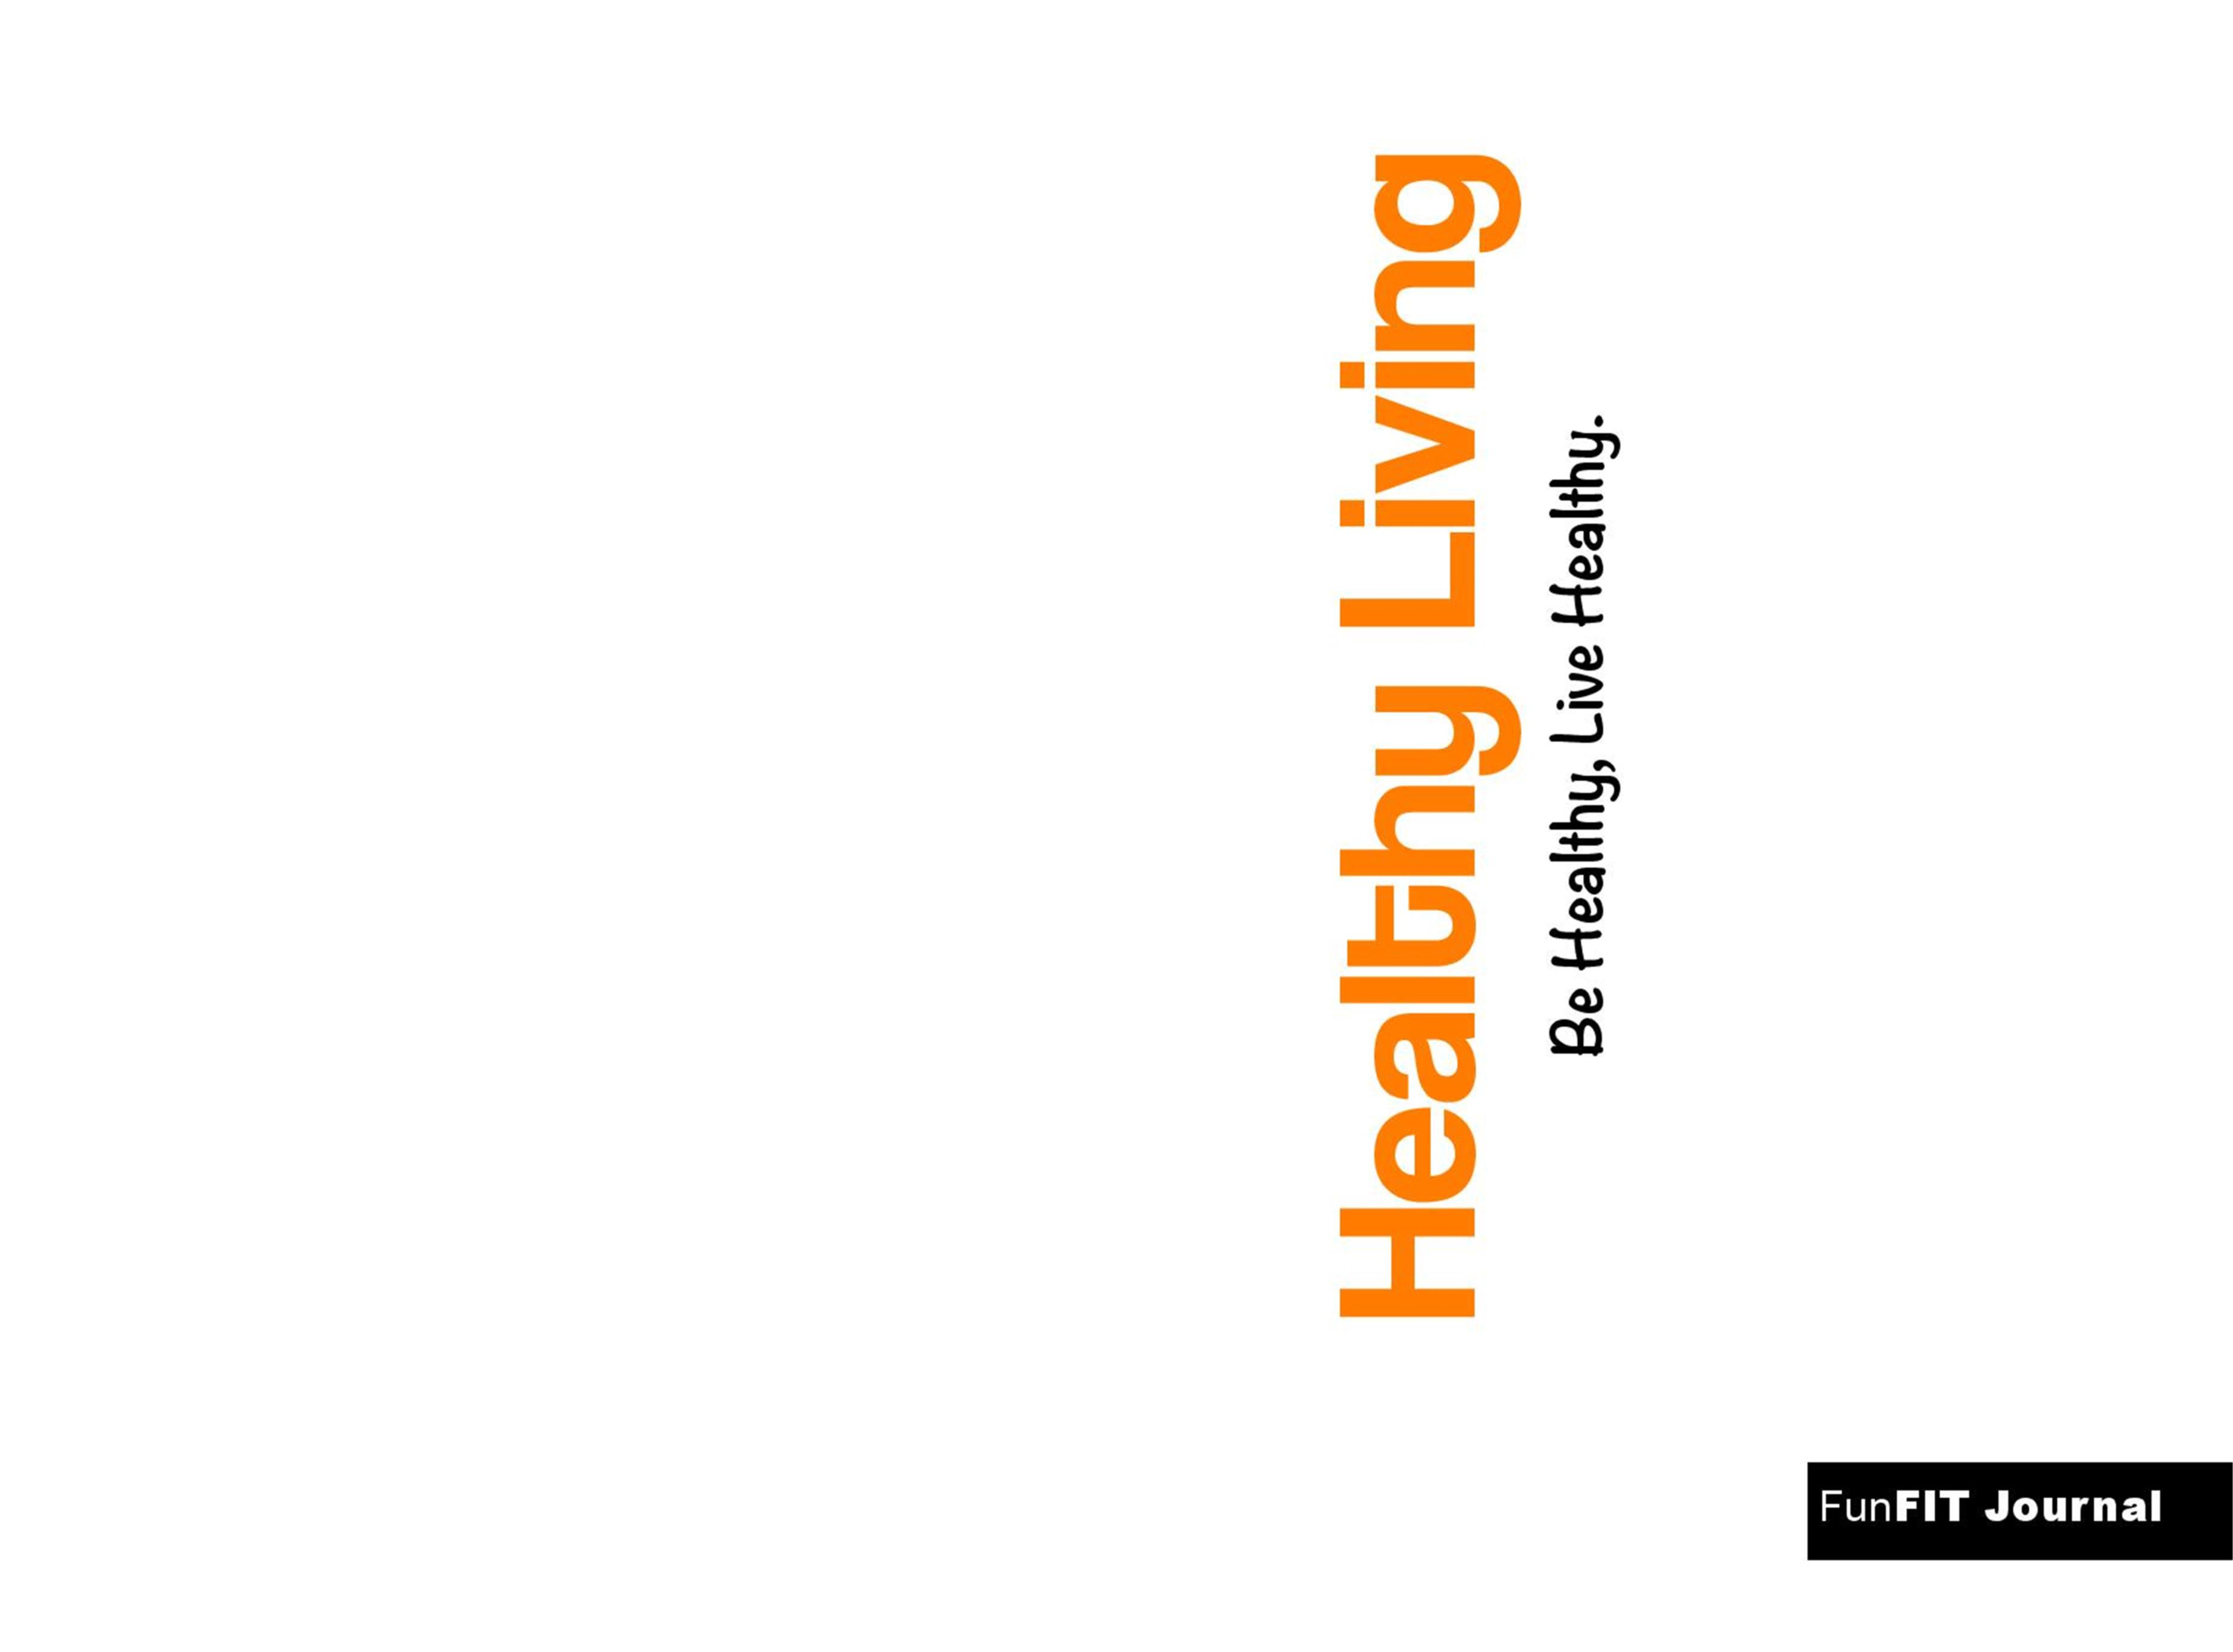 FunFIT Healthy Living Journal cover image